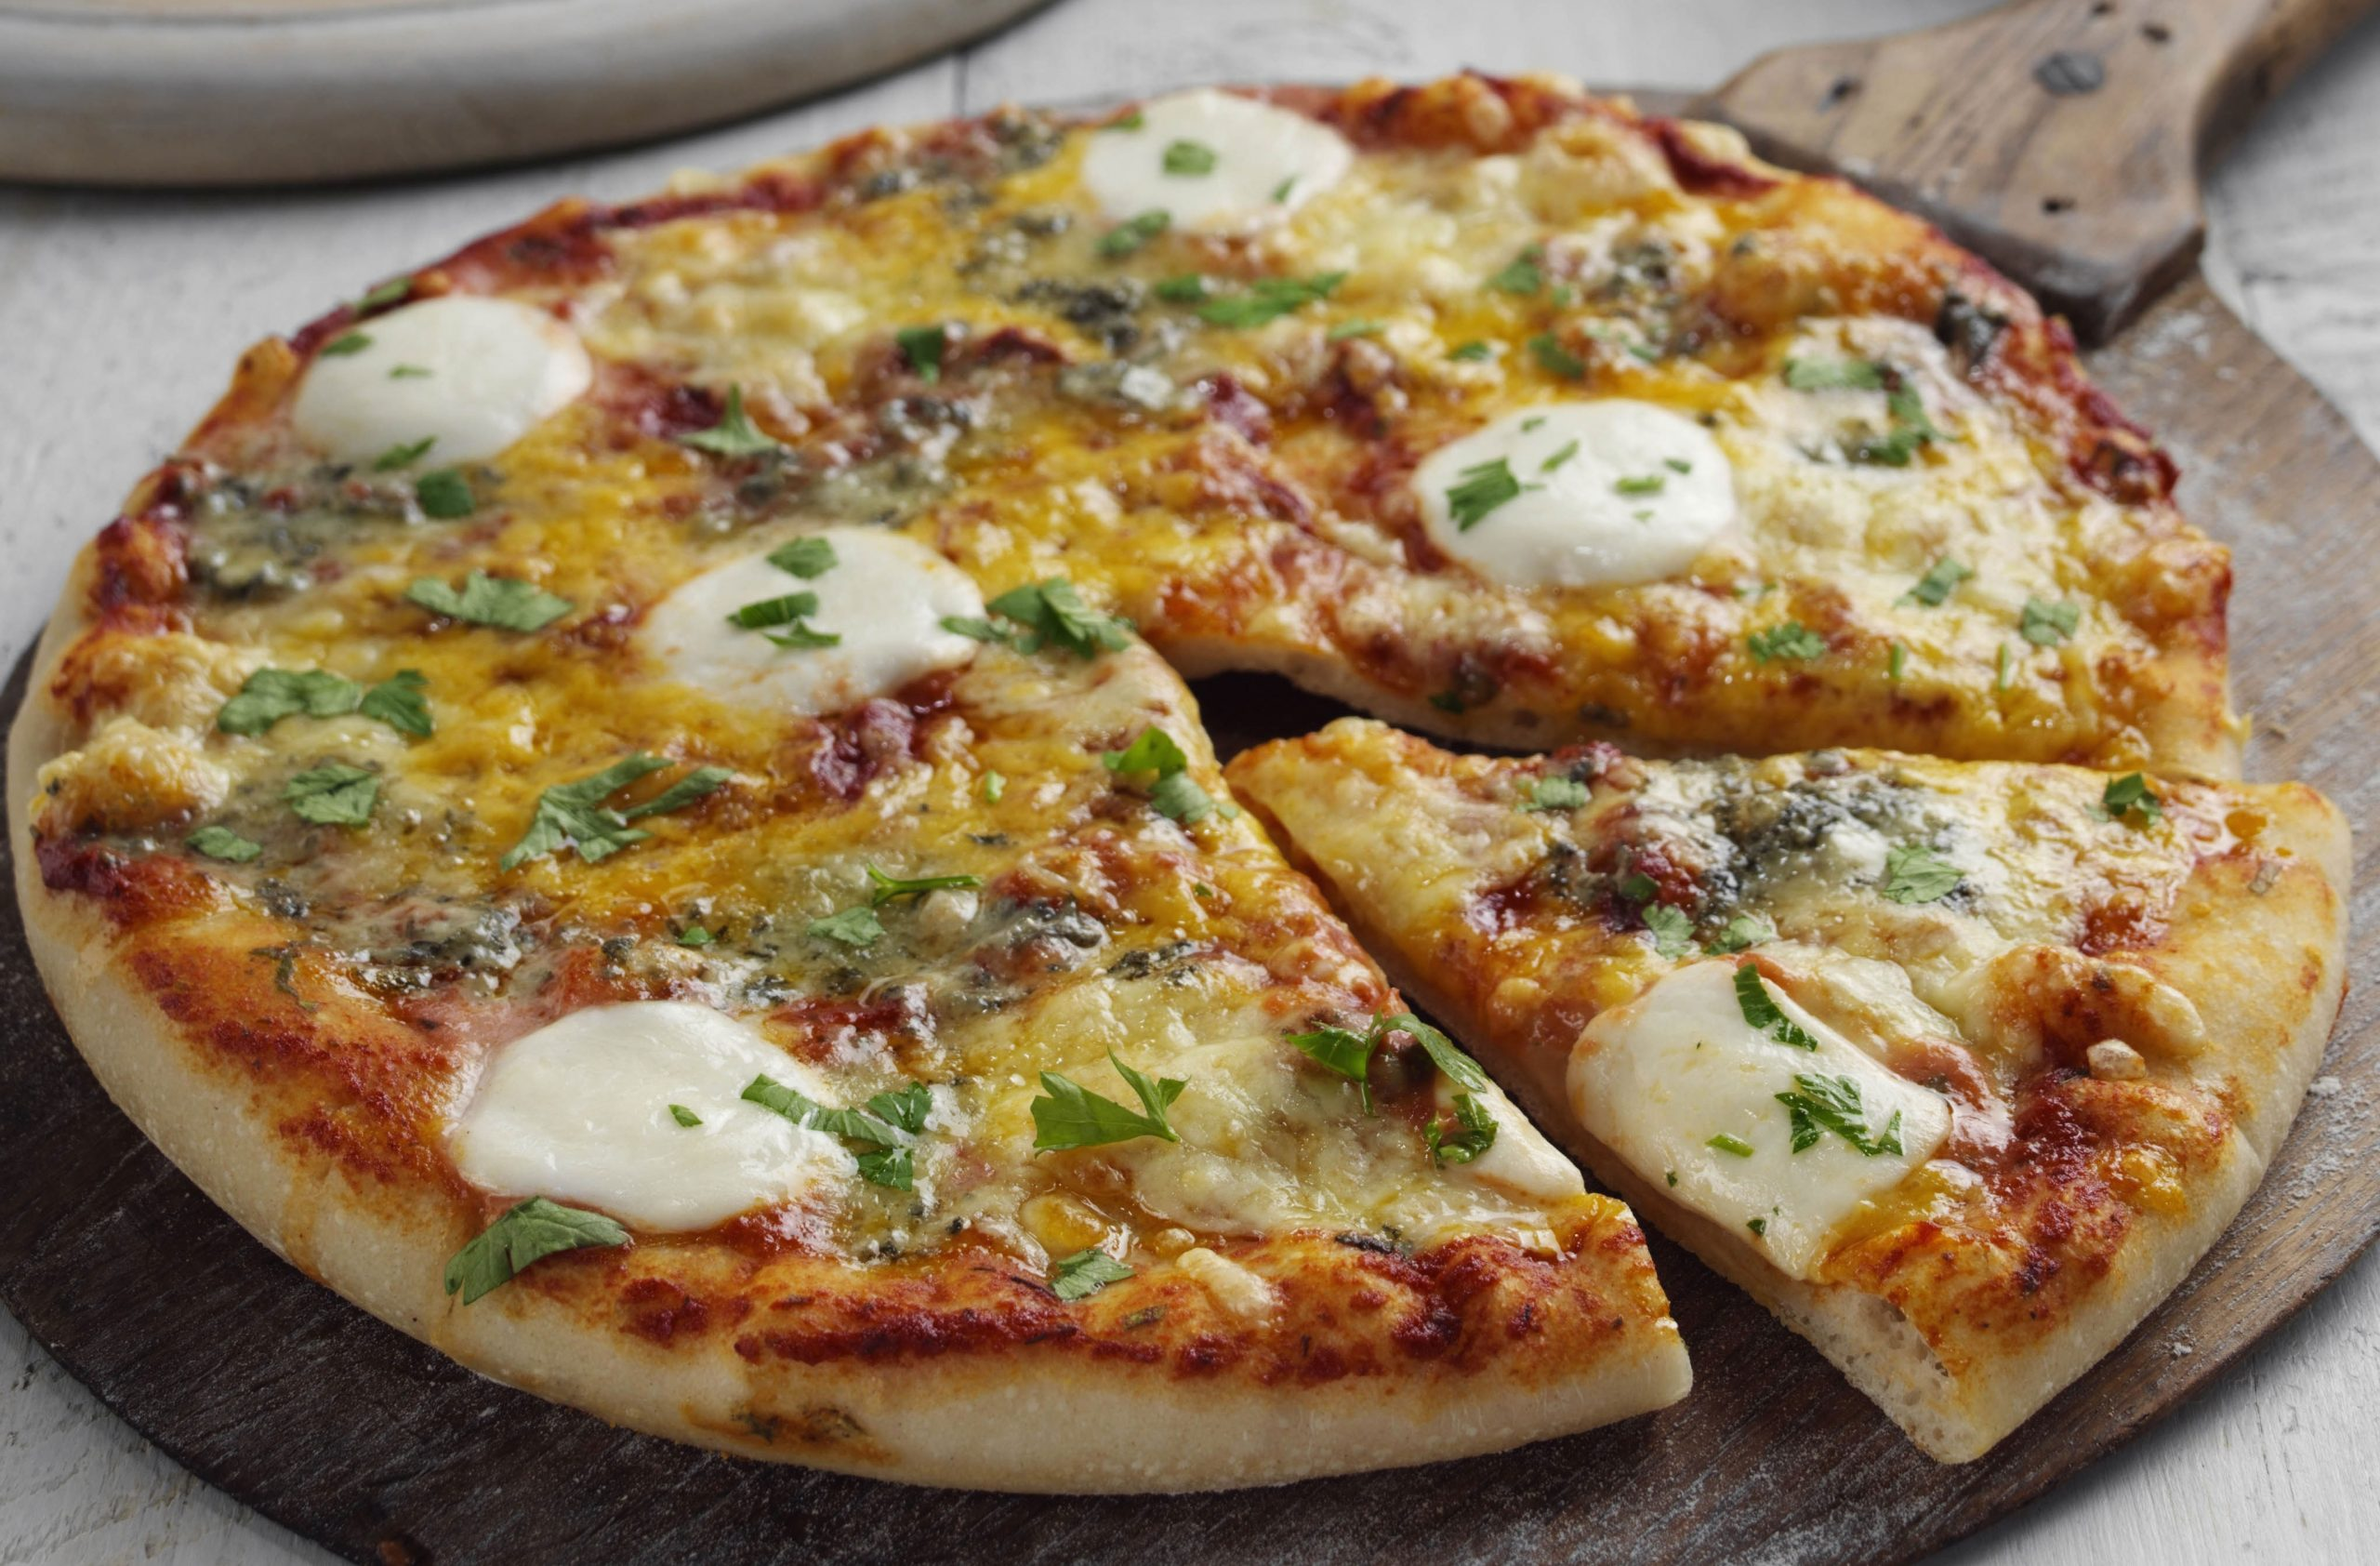 Oven-baked pizzas- The best and worst revealed